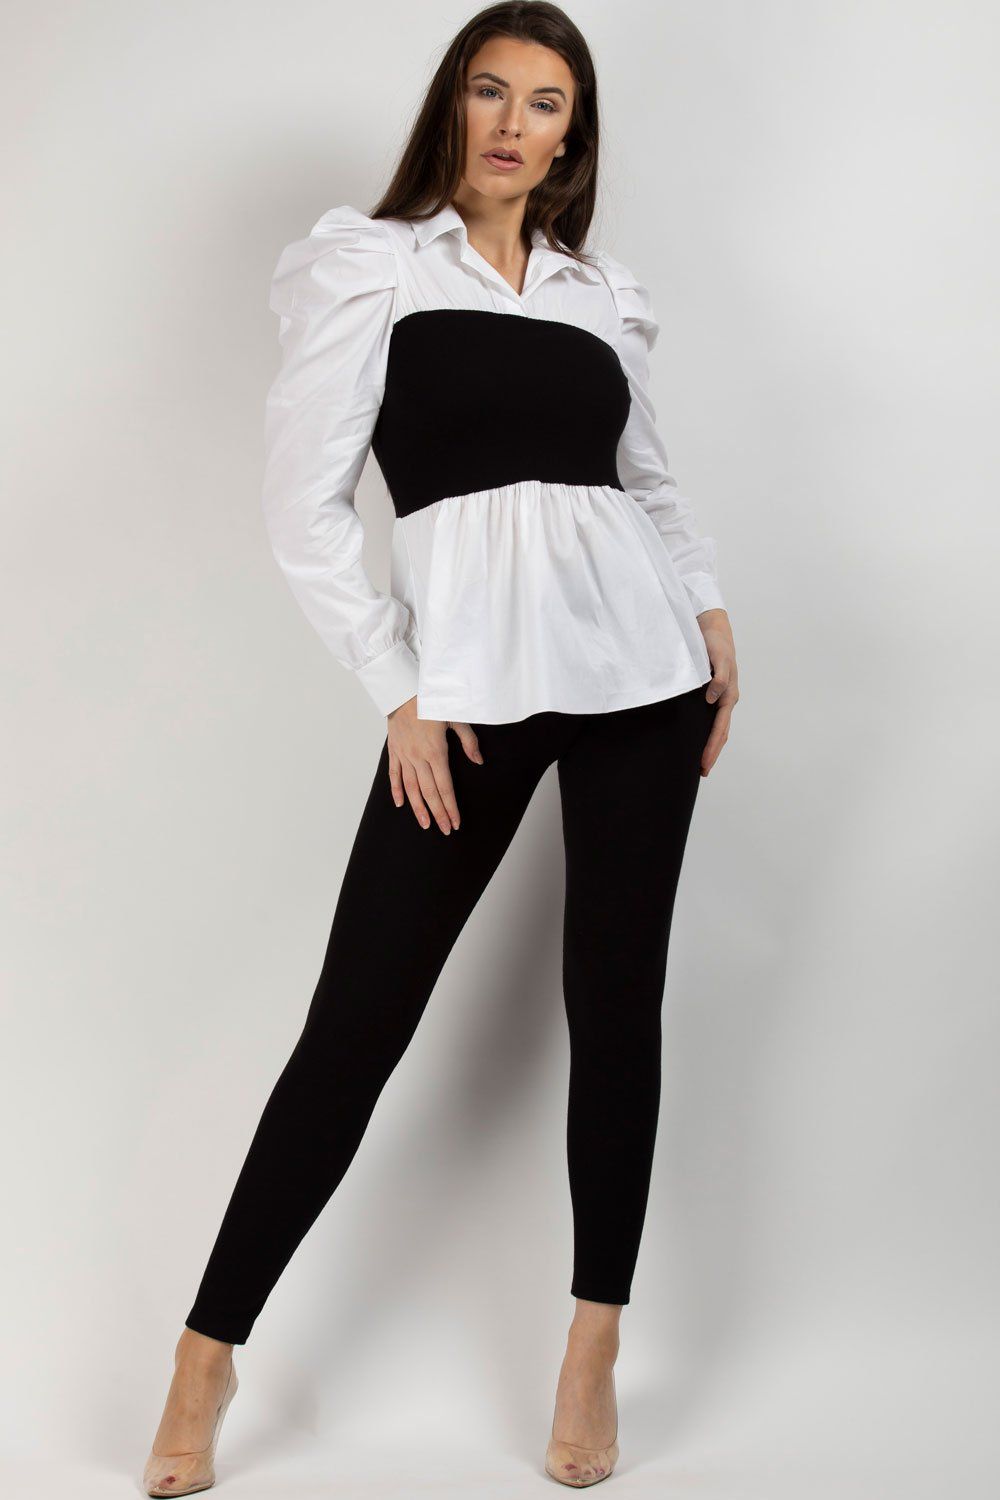 ribbed shirt and leggings co ord